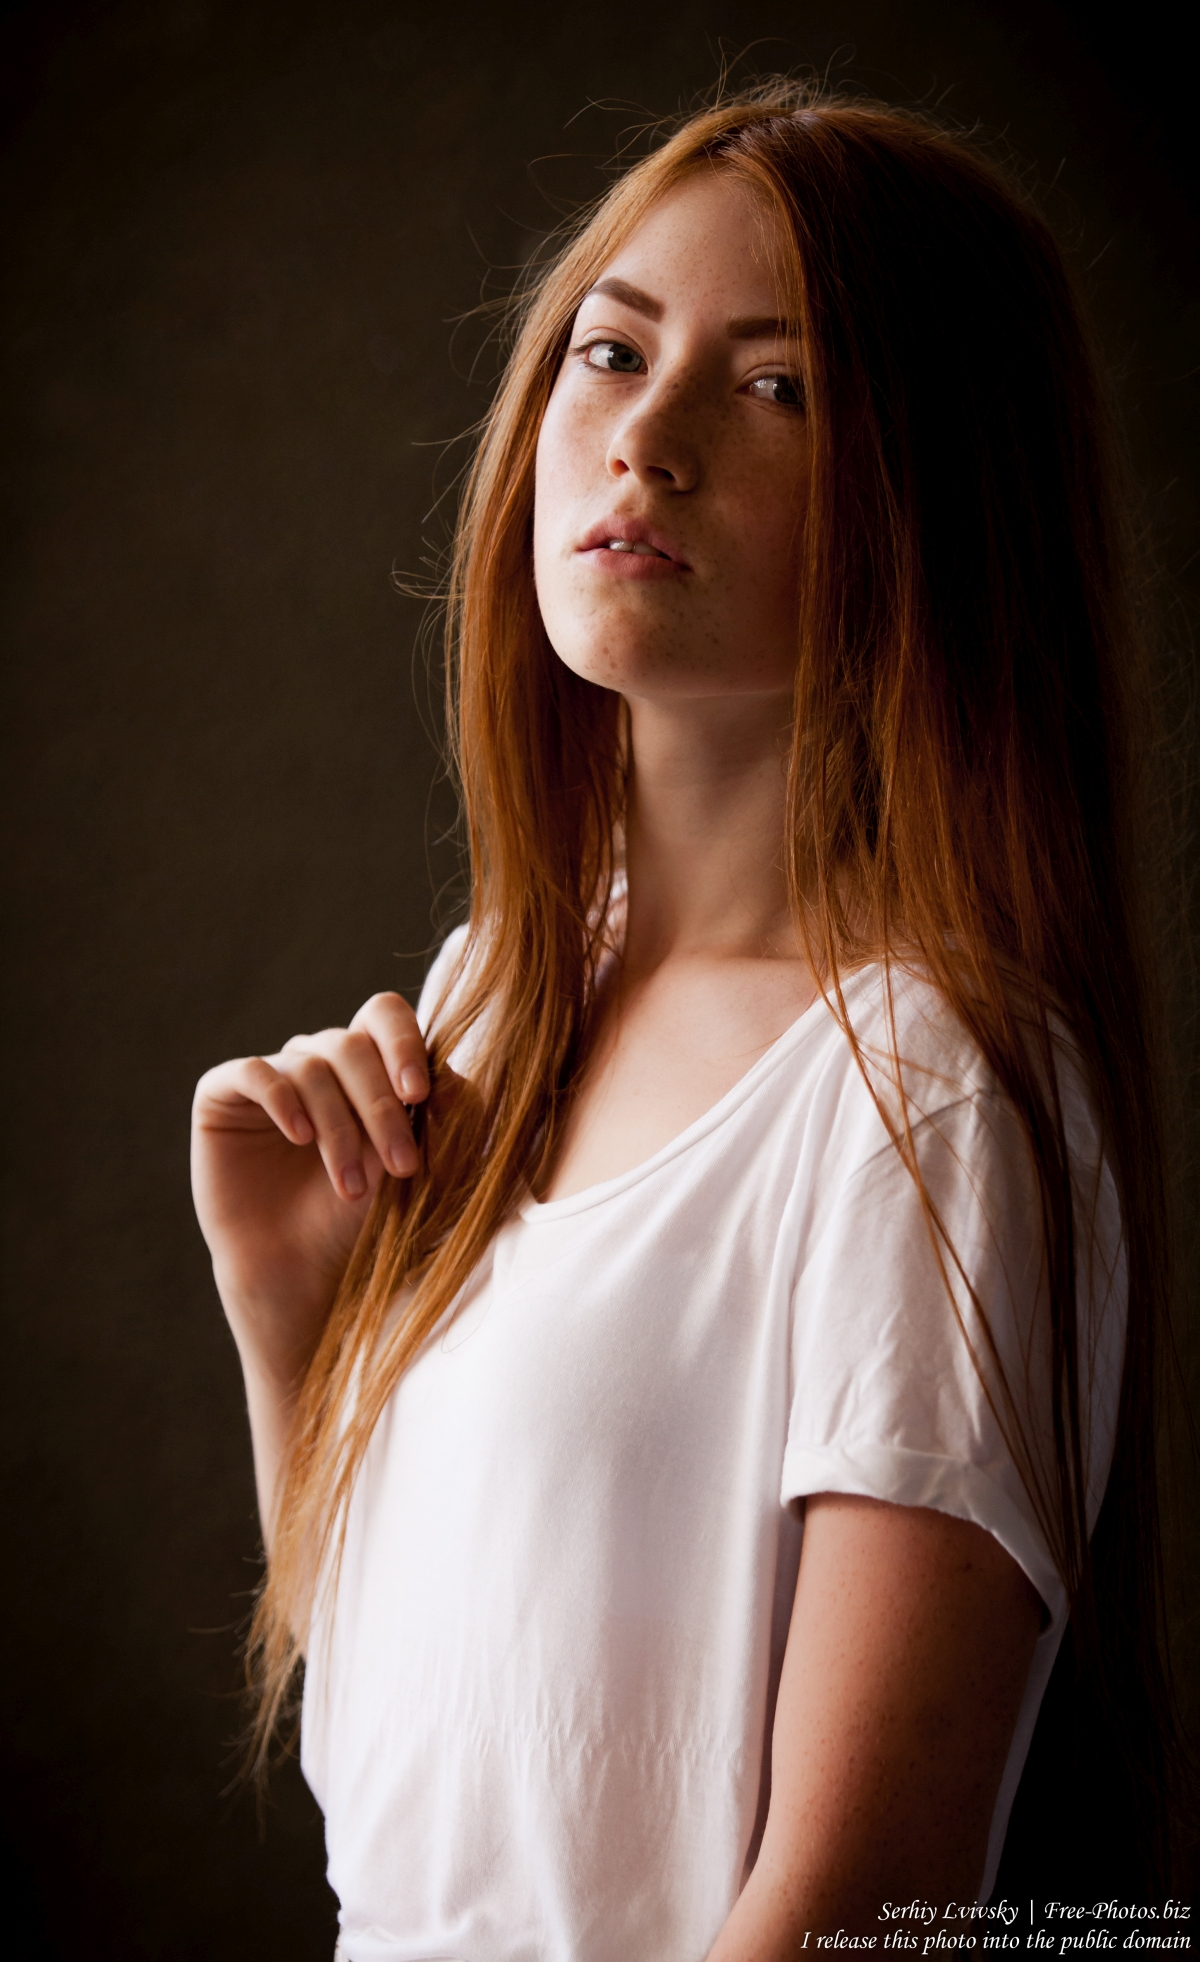 a_15-year-old_red-haired_catholic_girl_photographed_by_serhiy_lvivsky_in_august_2015_01